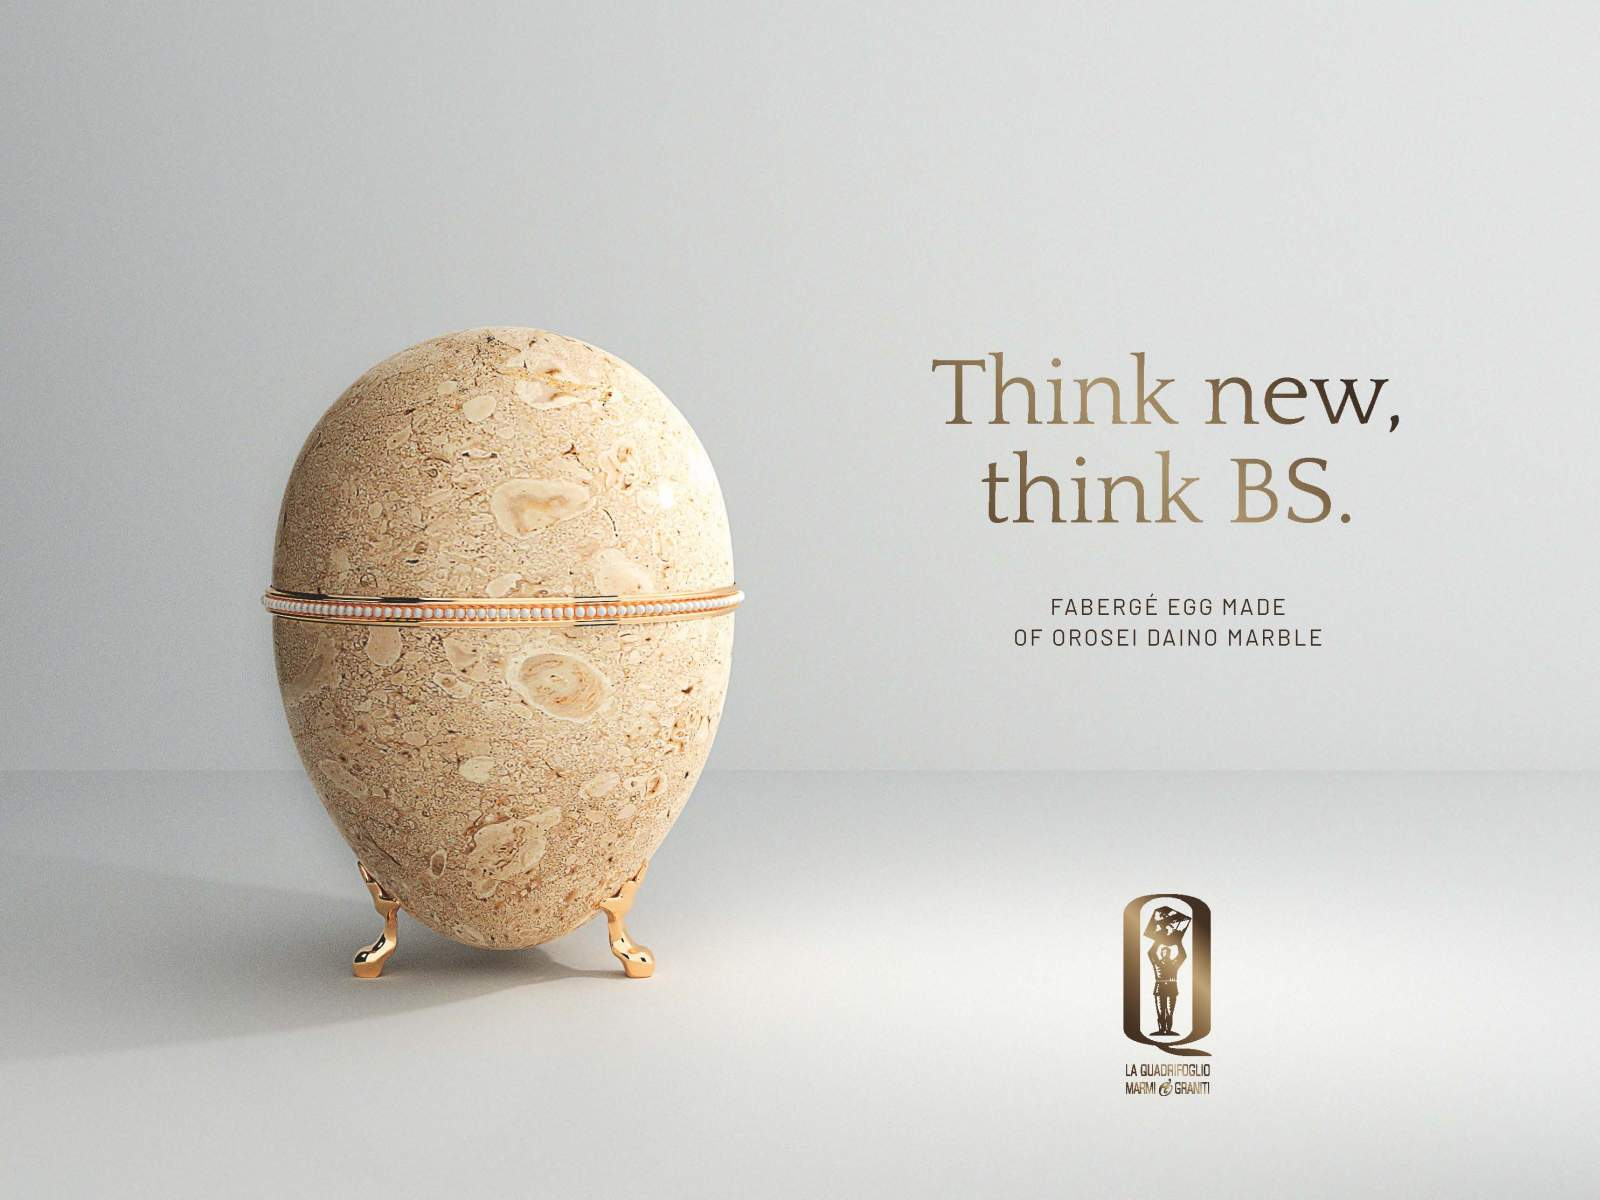 Think new, think BS.